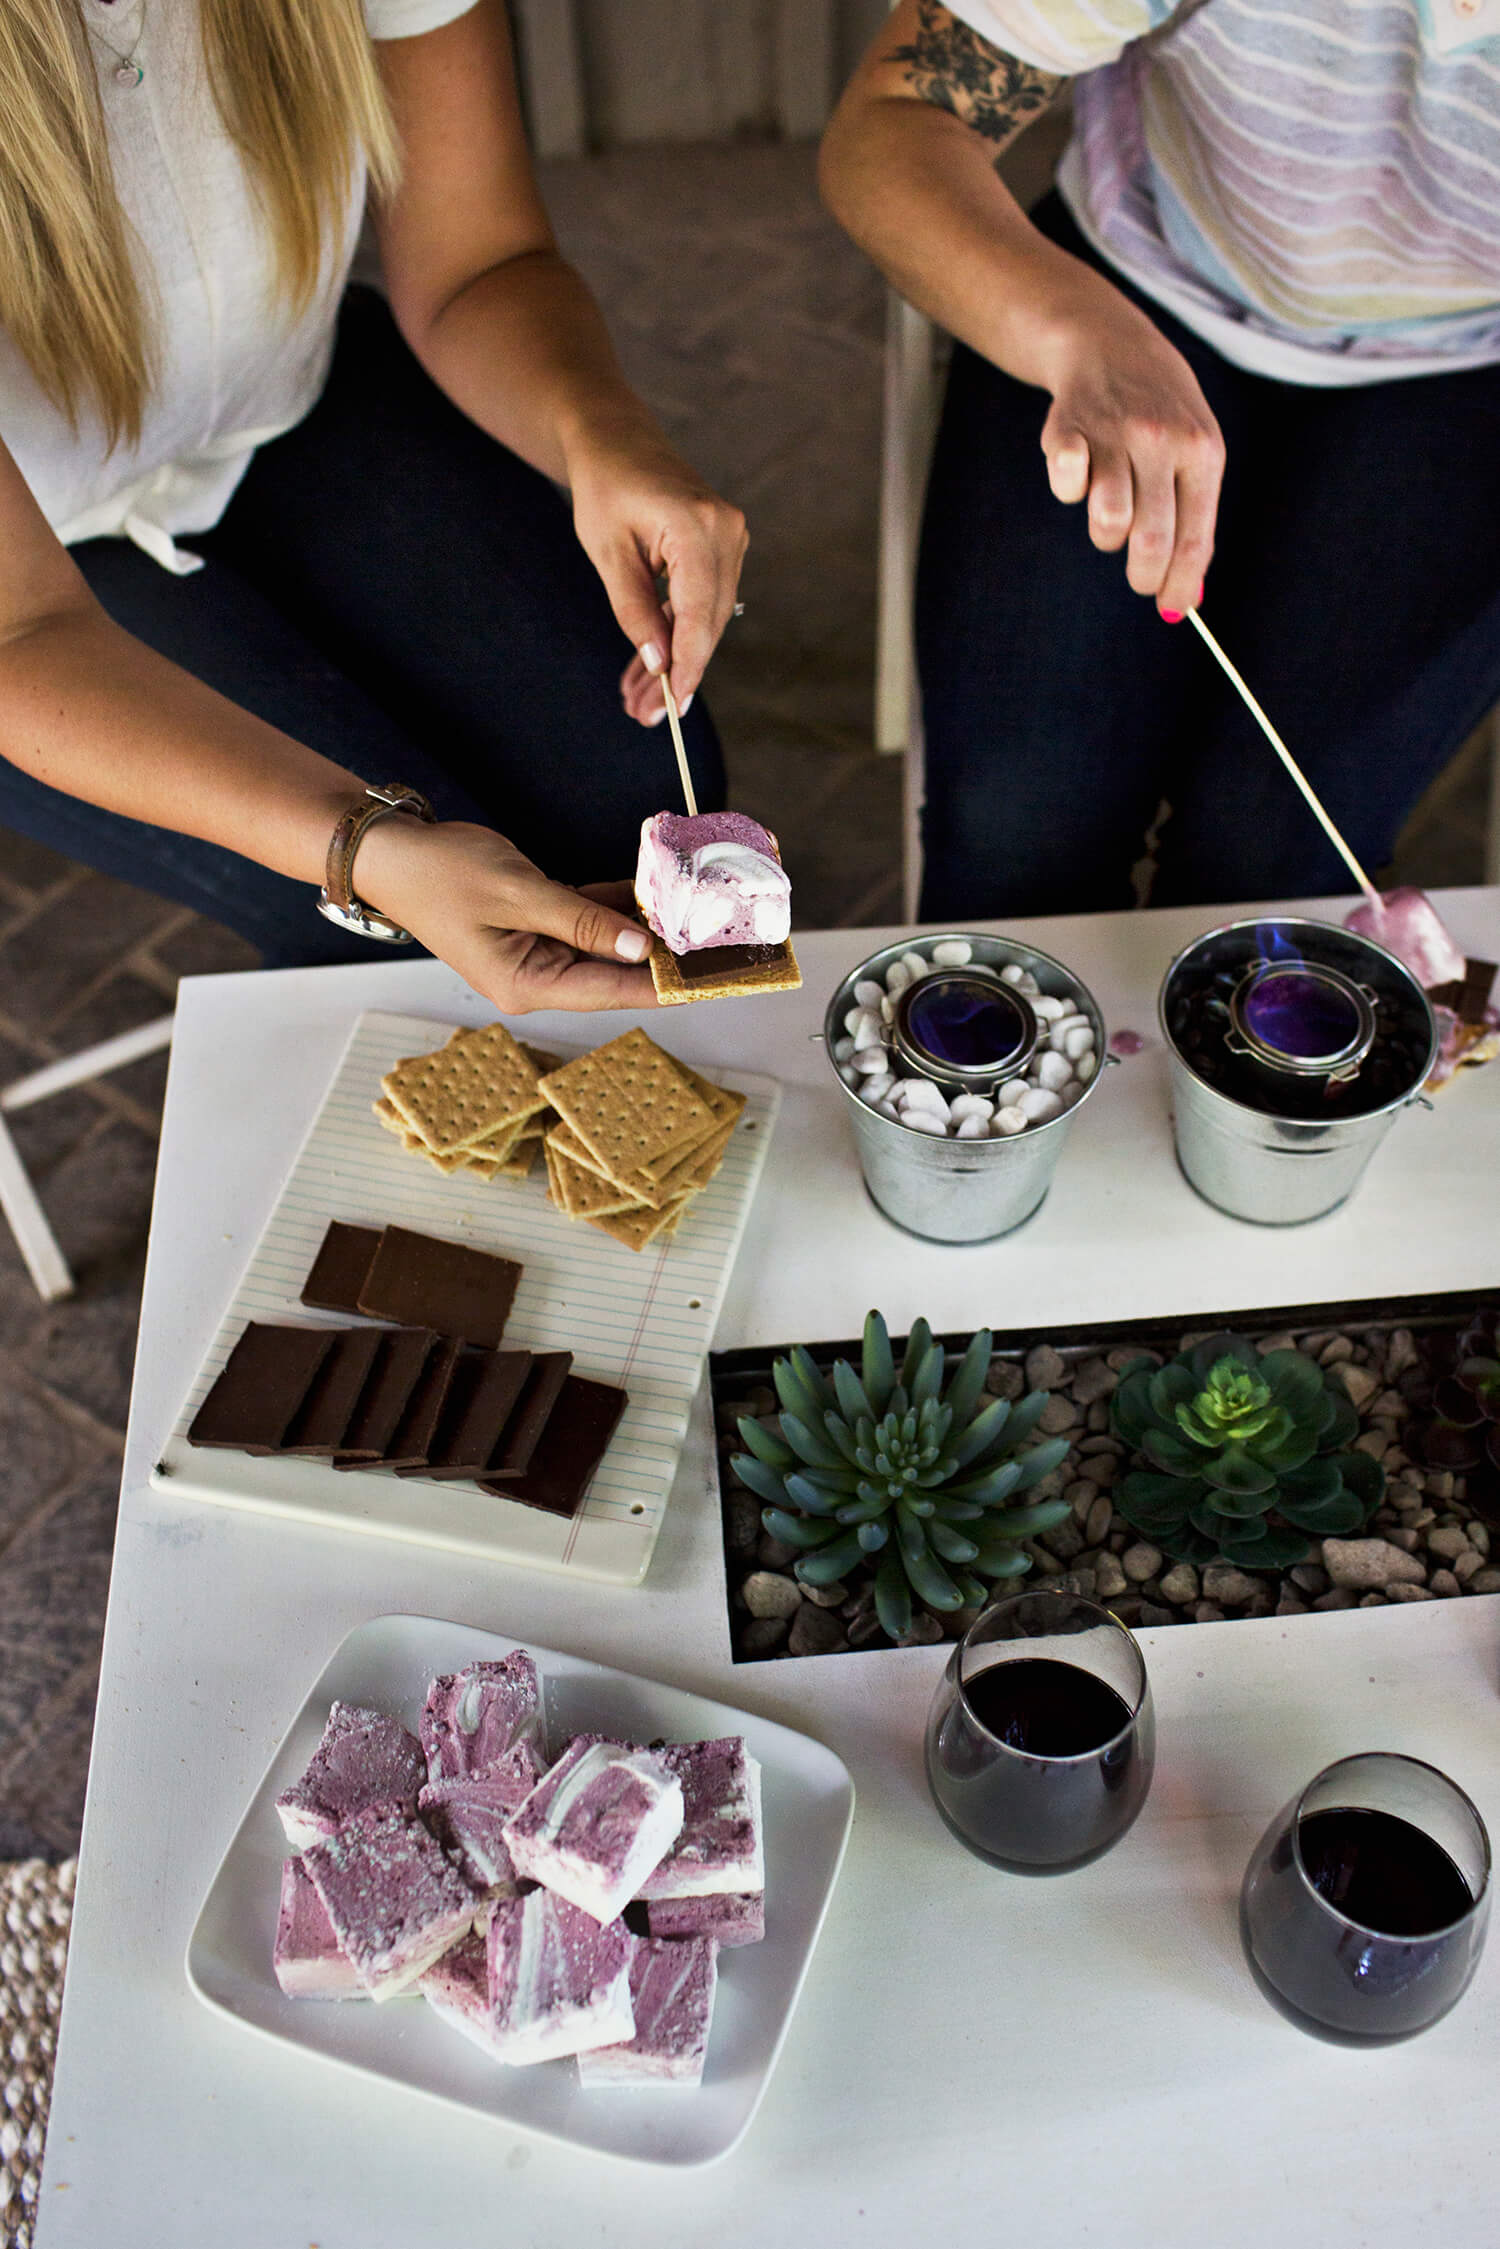 Red Wine Marshmallow s'mores recipe (via fitness-4all.com)